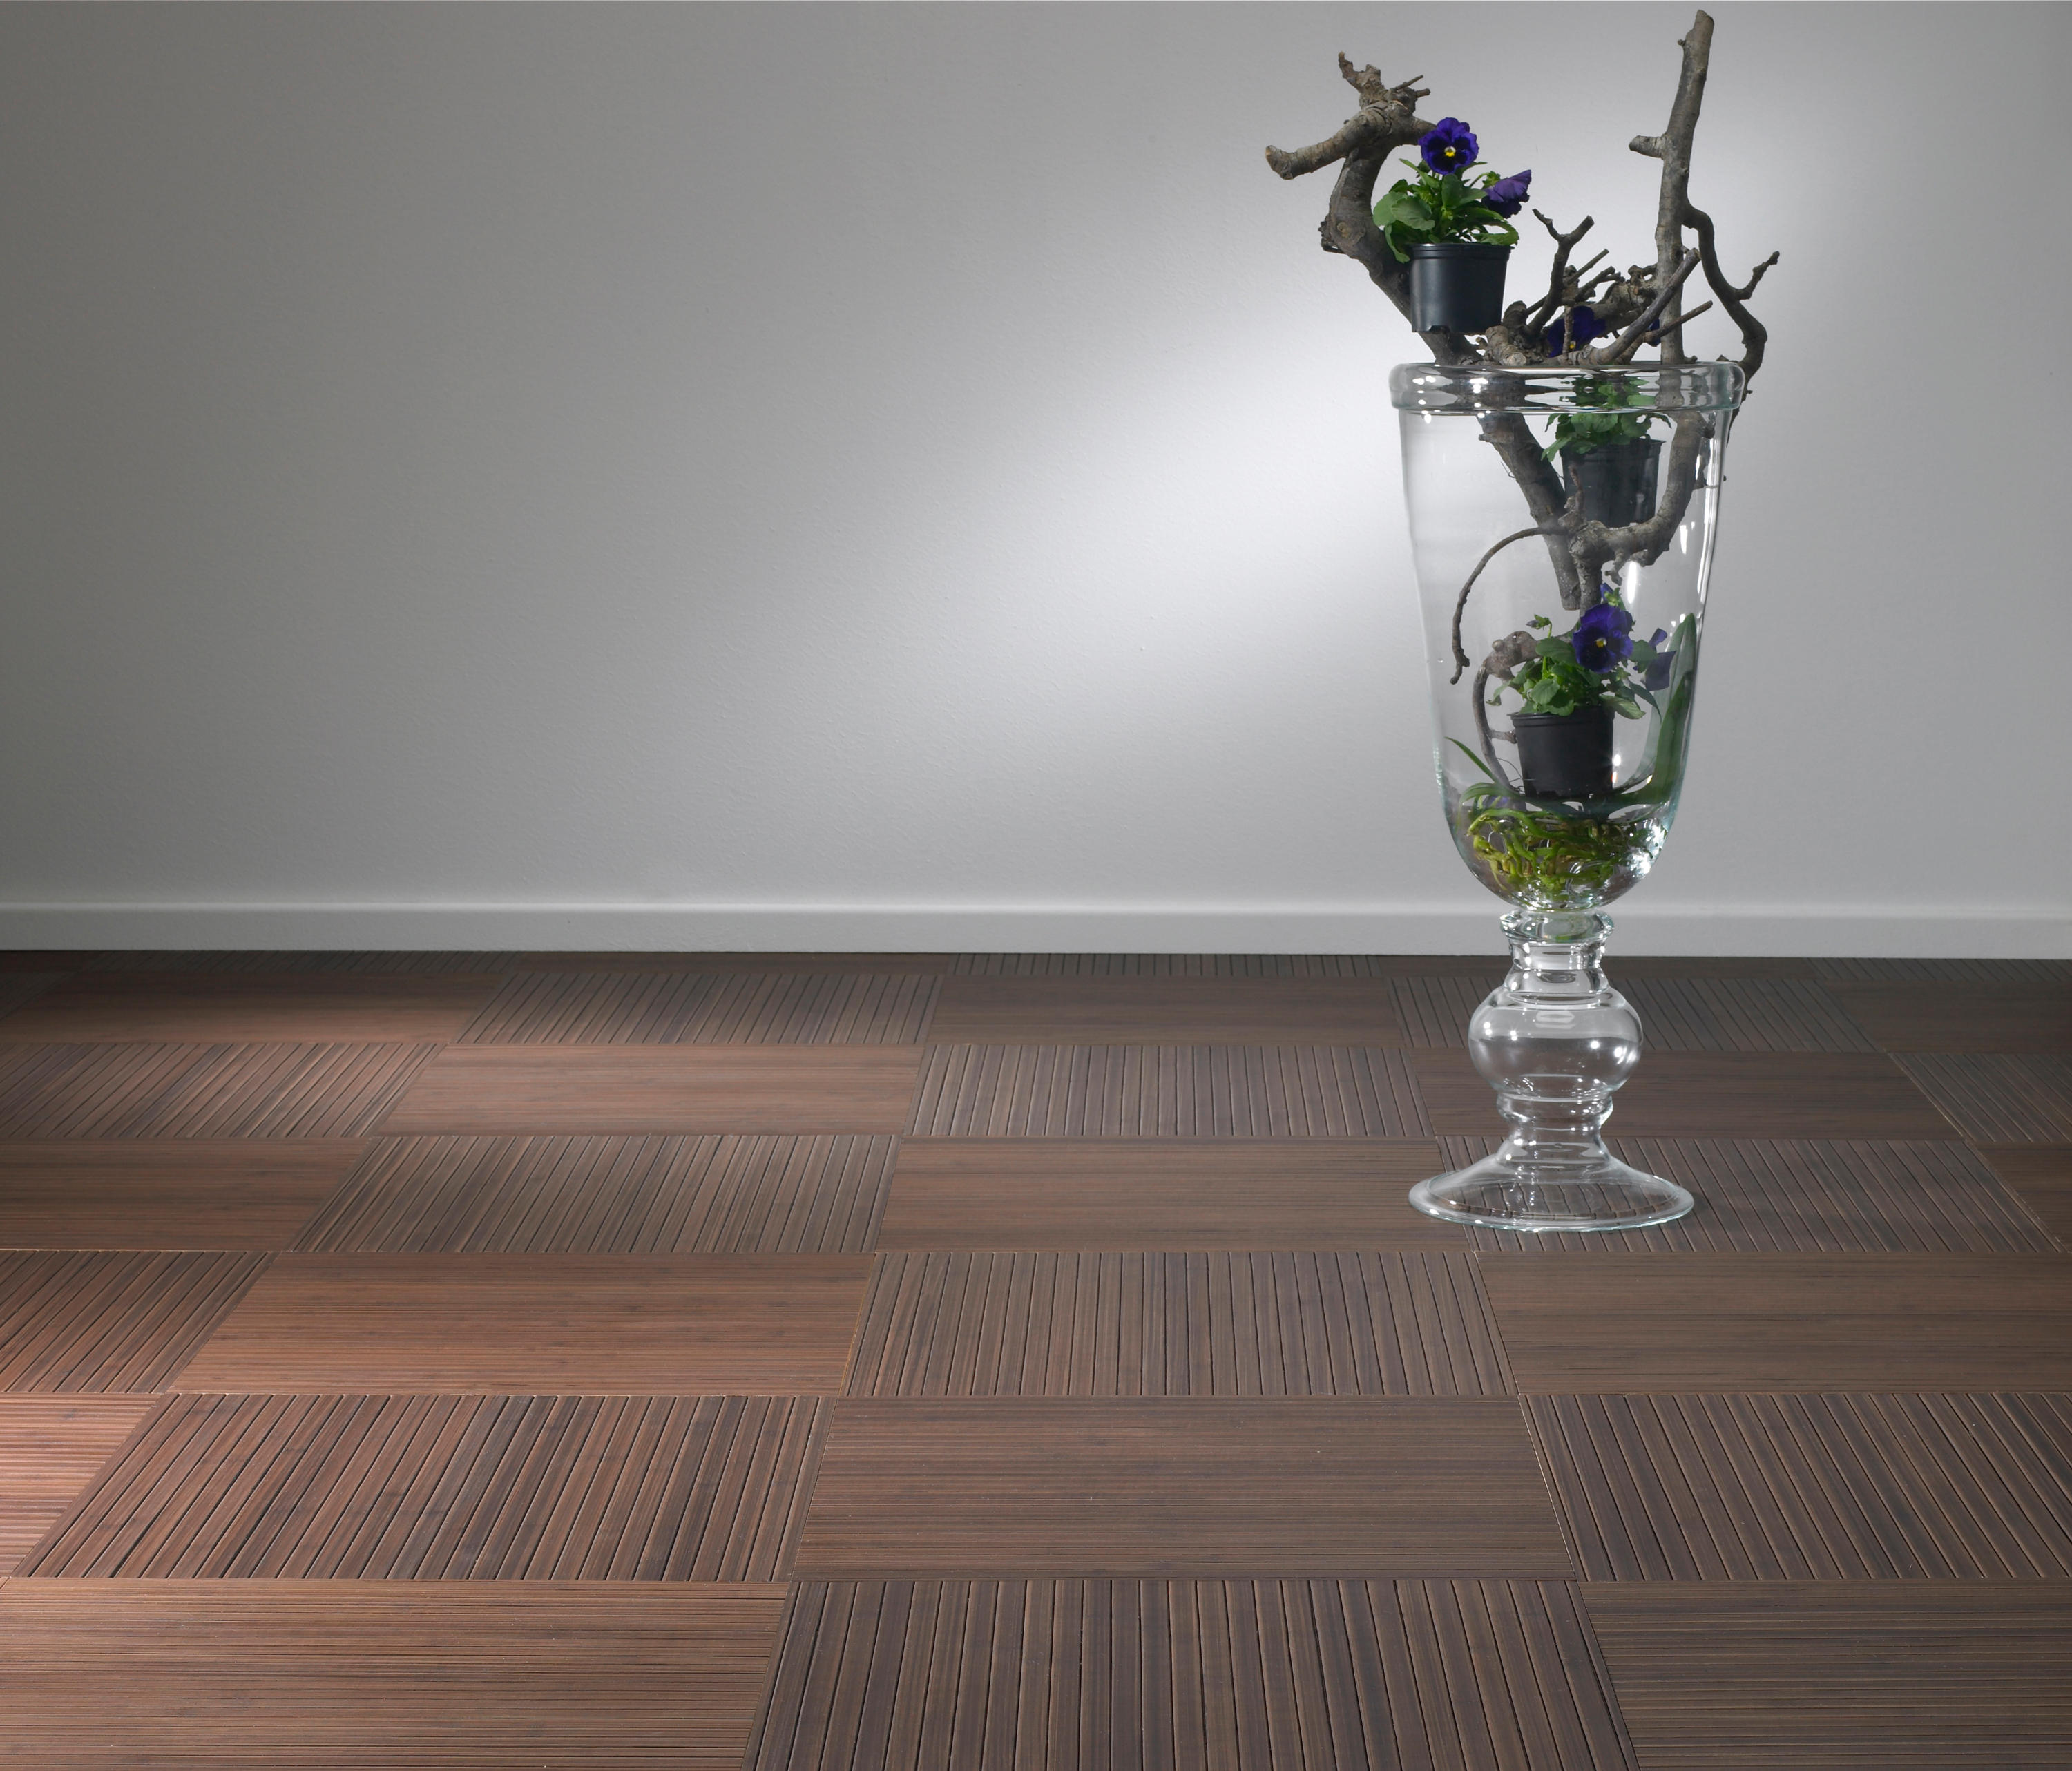 UNIBAMBOO PLAINPRESSED BLACK Bamboo flooring from MOSO bamboo